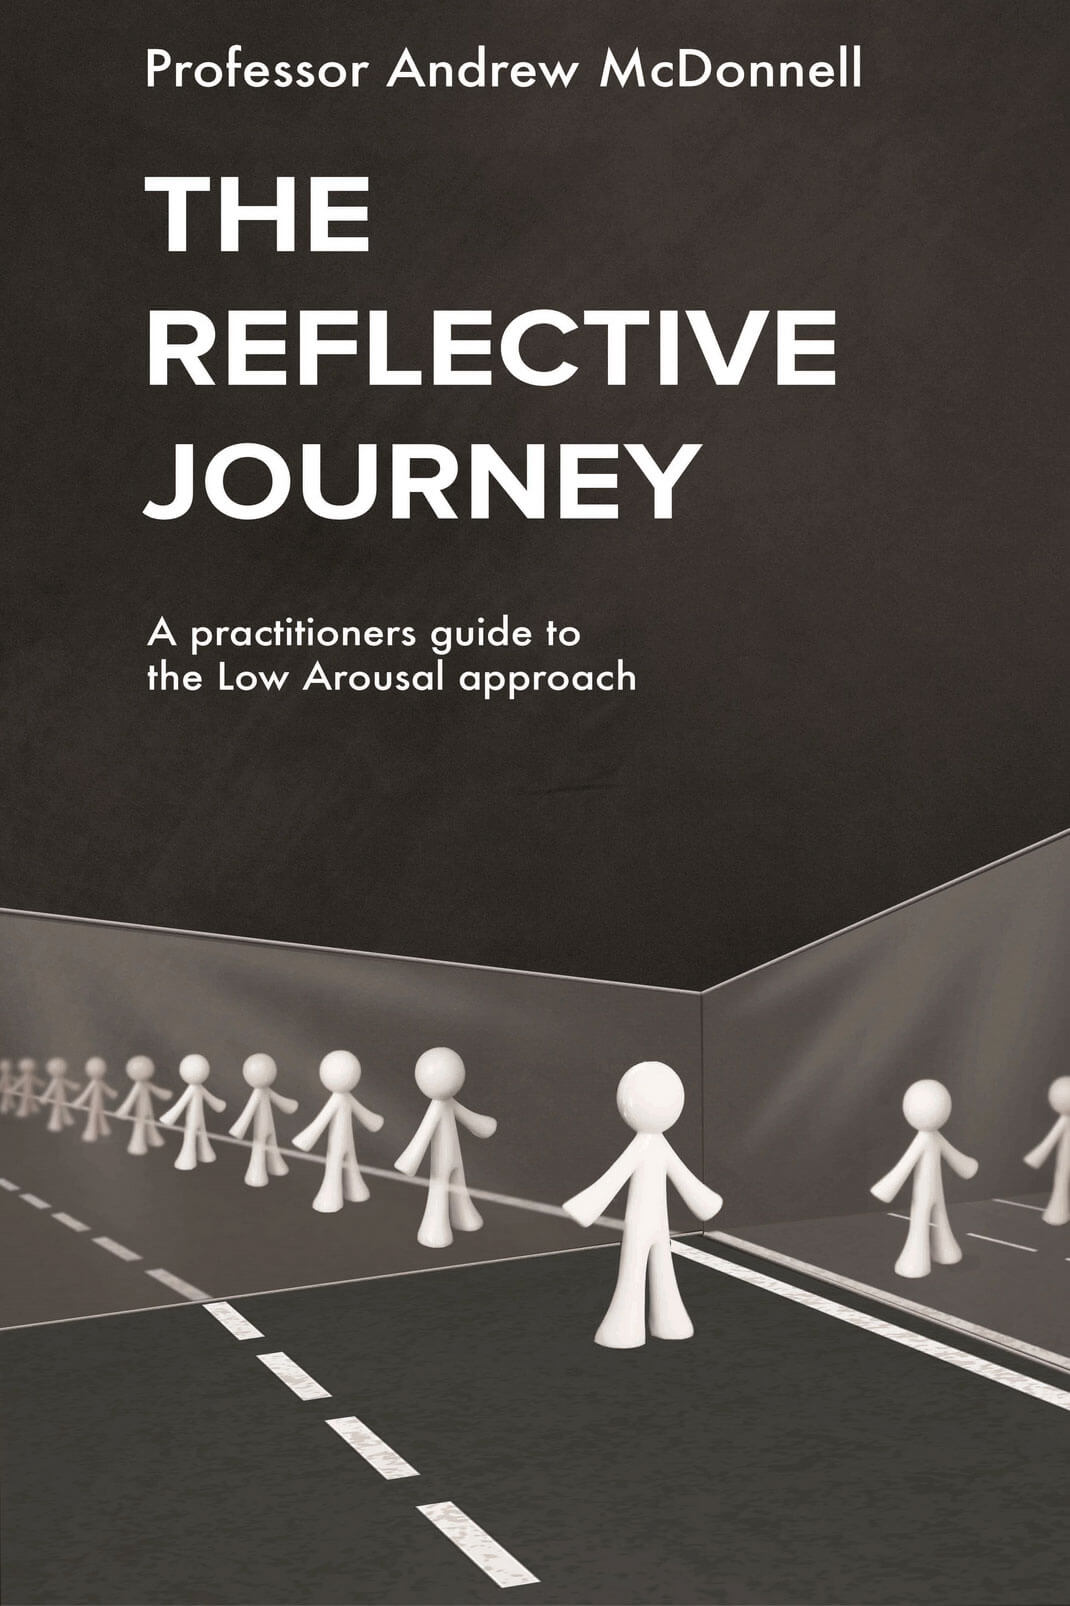 The Reflective Journey - A Practitioners Guide to the Low Arousal Approach